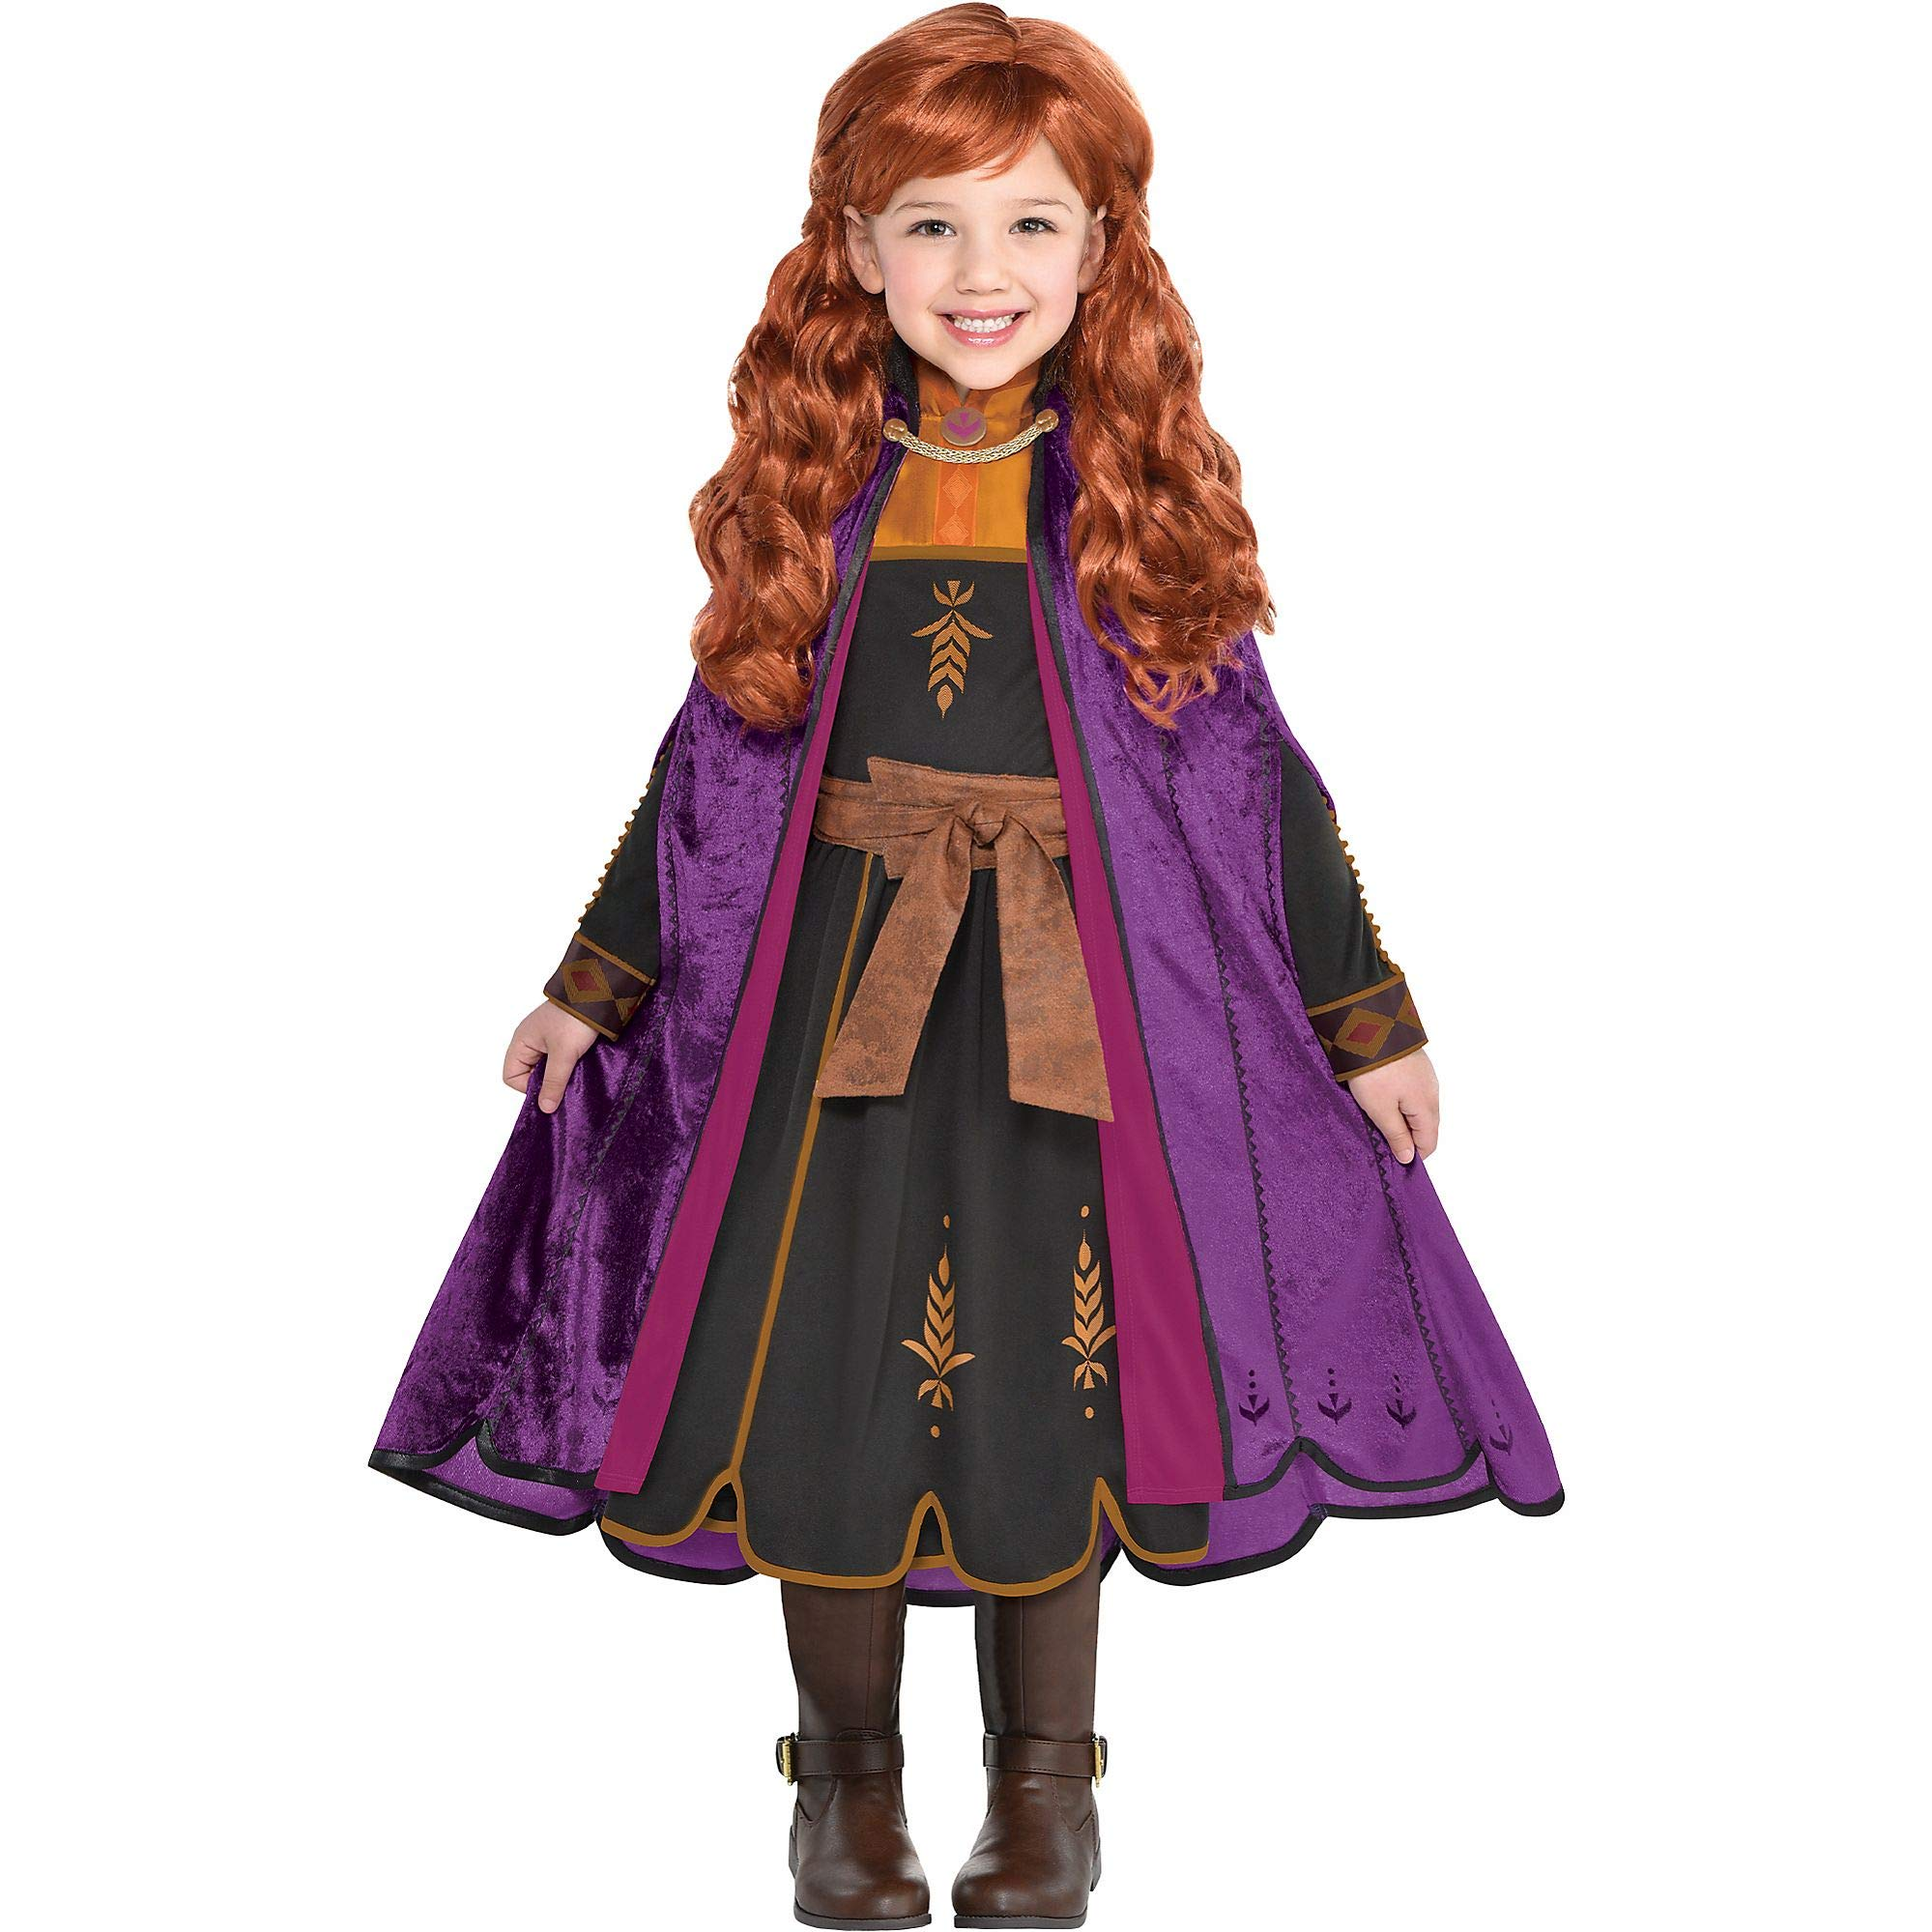 Party City Frozen 2 Halloween Costume for Girls or Women, Anna and Elsa, Includes Wig, Dress and Accessories